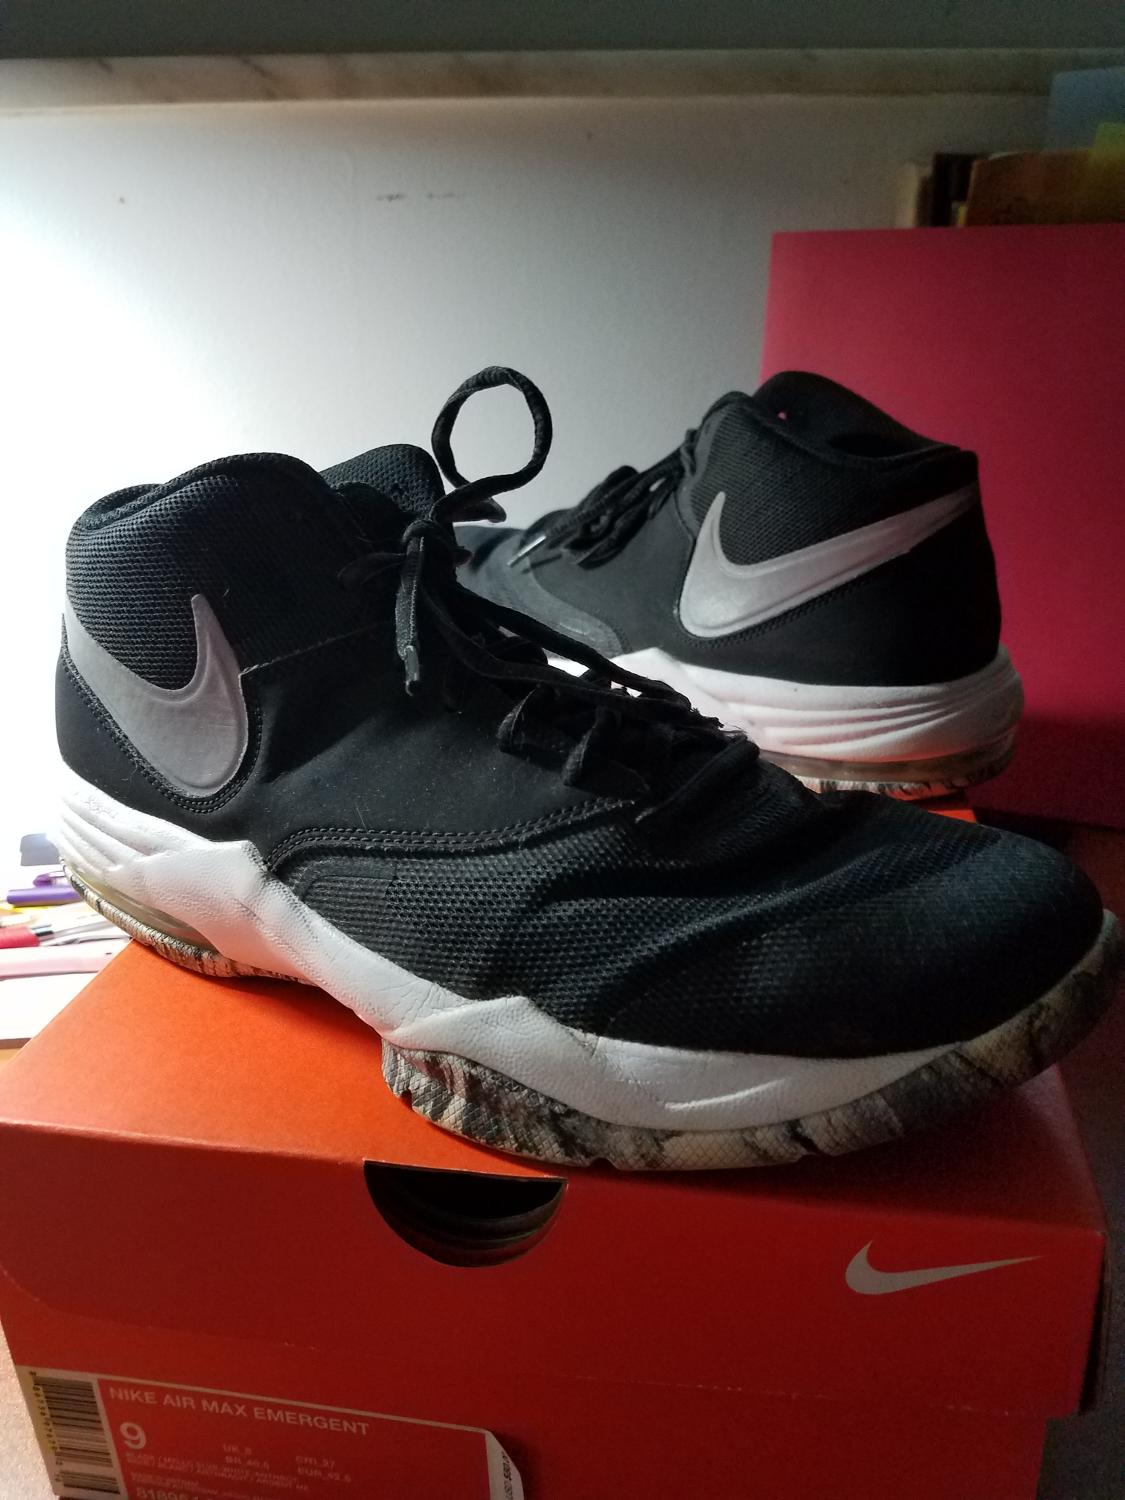 new products c1093 dd7b8 Best Nike Air Max Emergent Sneakers Athletic Shoes W box Black Men s 9 Eu  42.5 for sale in Oak Ridge, Tennessee for 2019